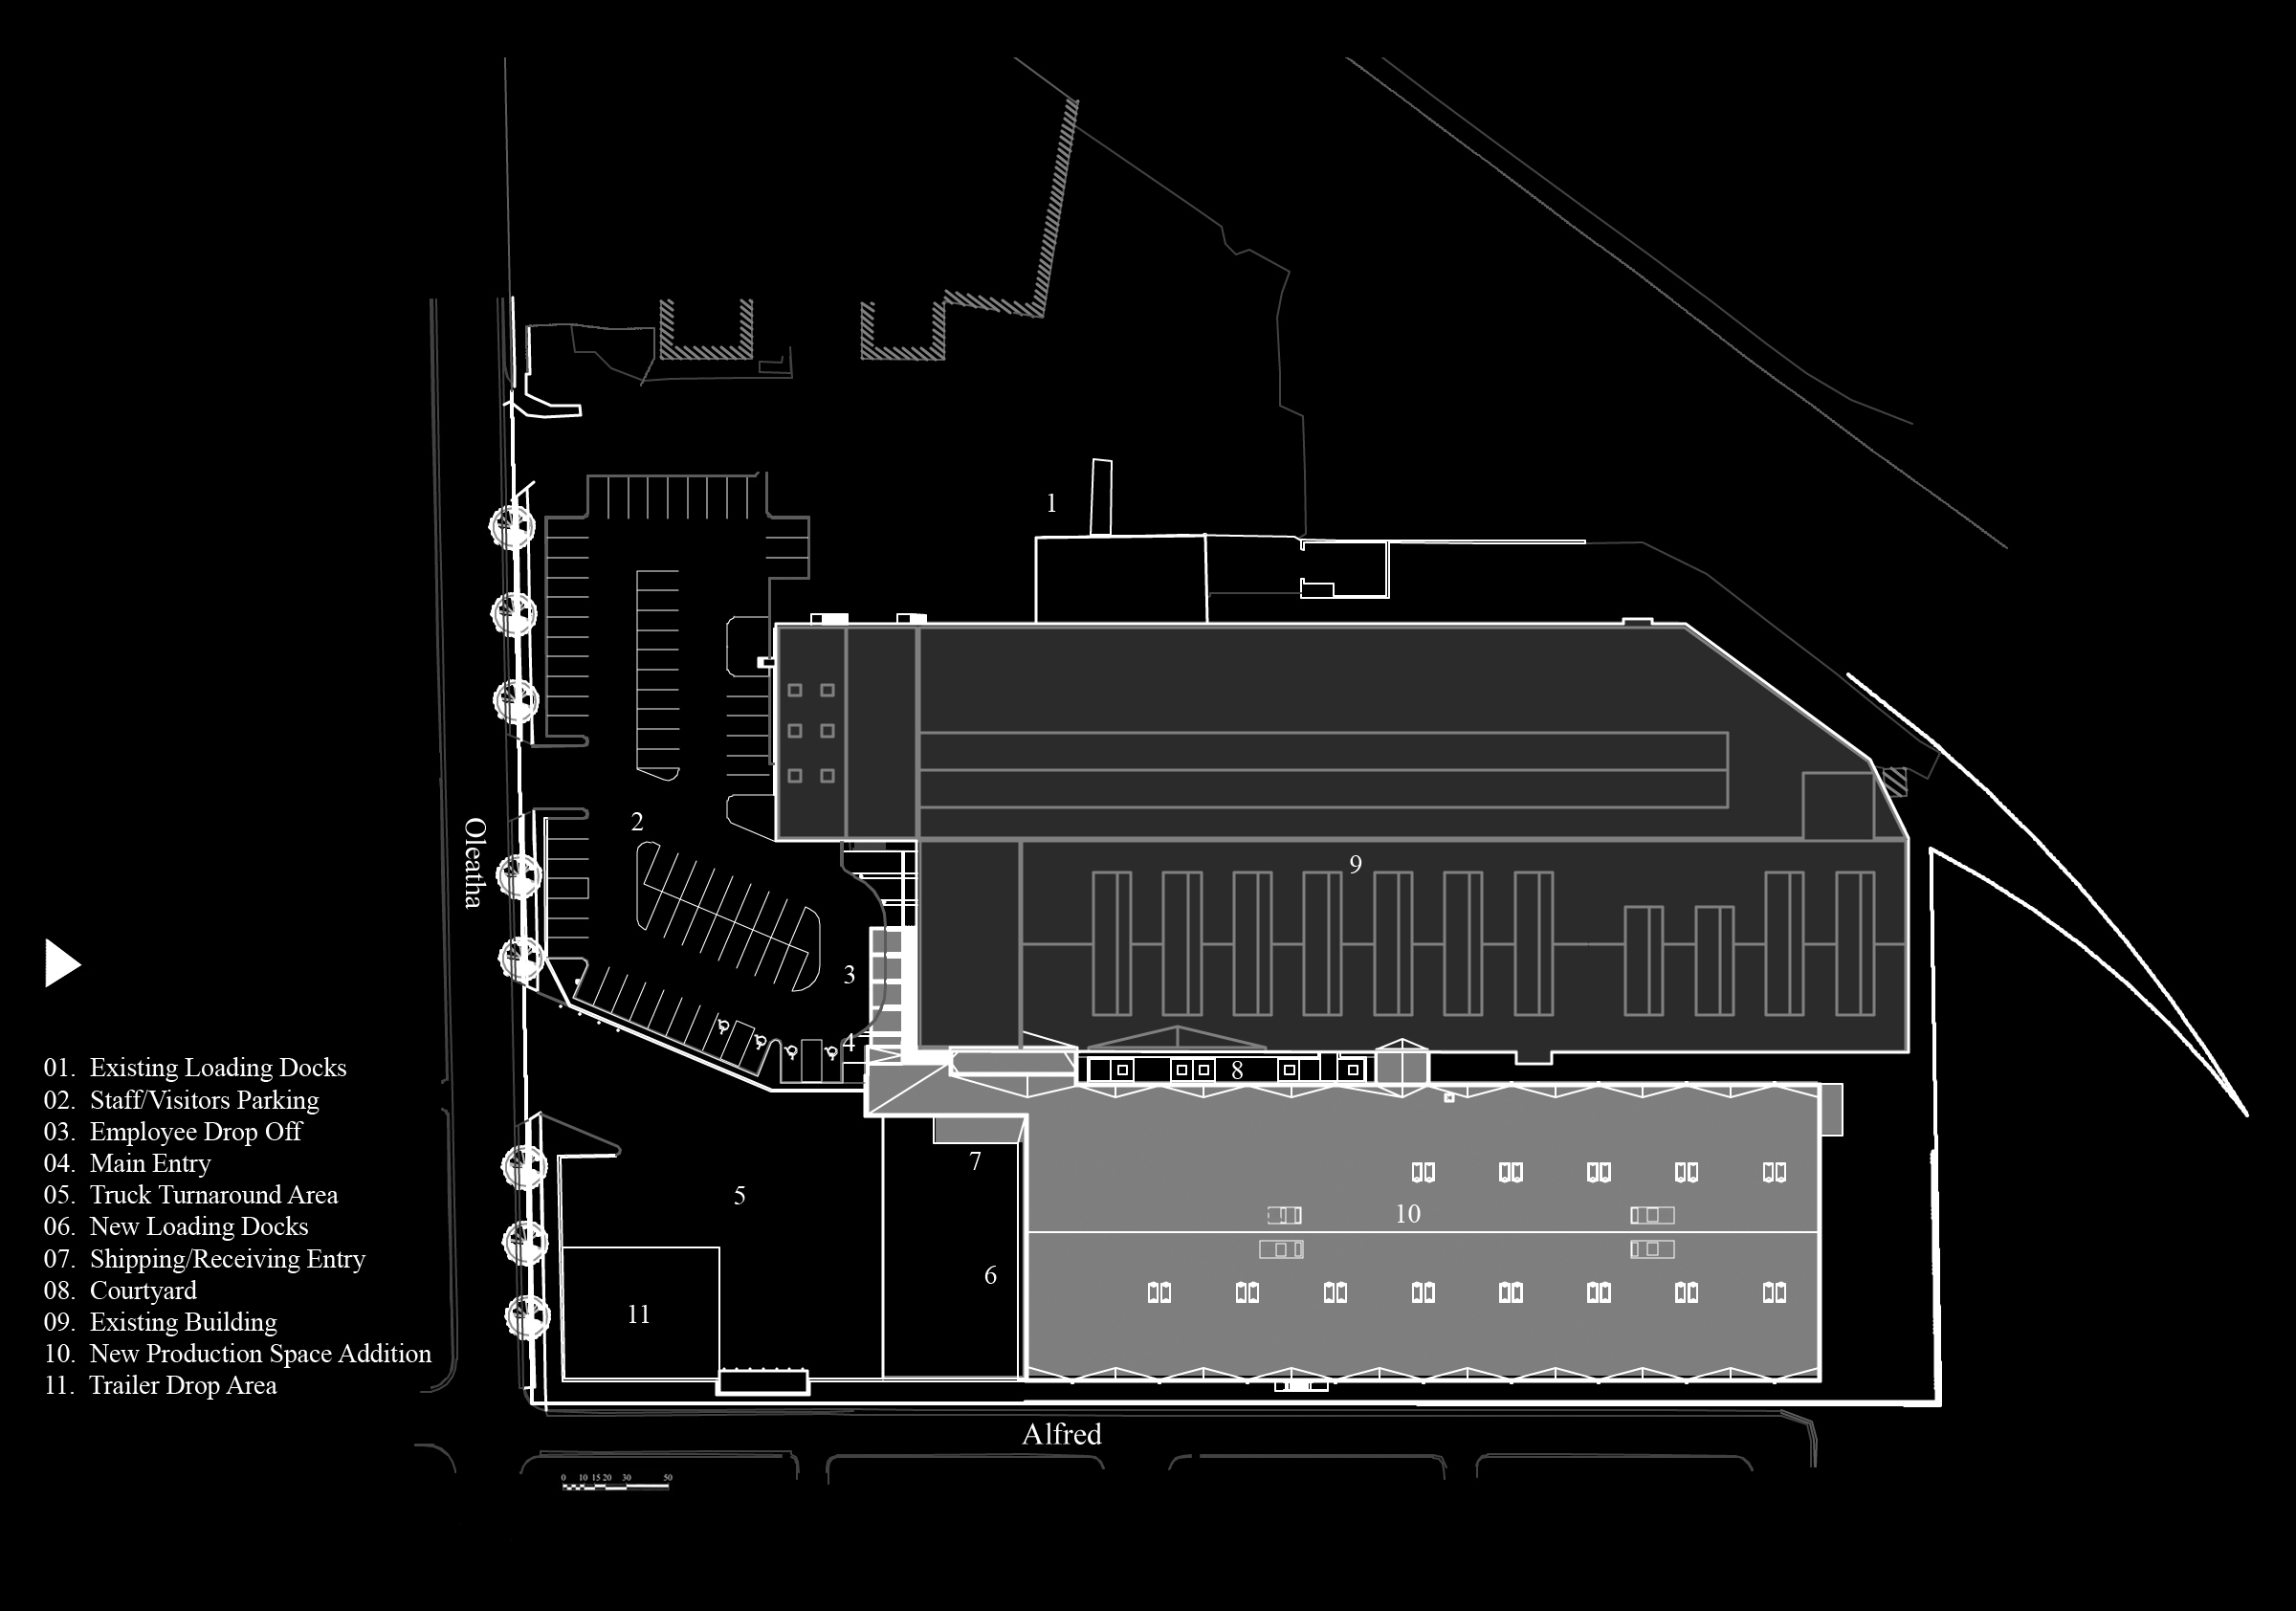 SP-01_aia- site plan 2_BW2.jpg